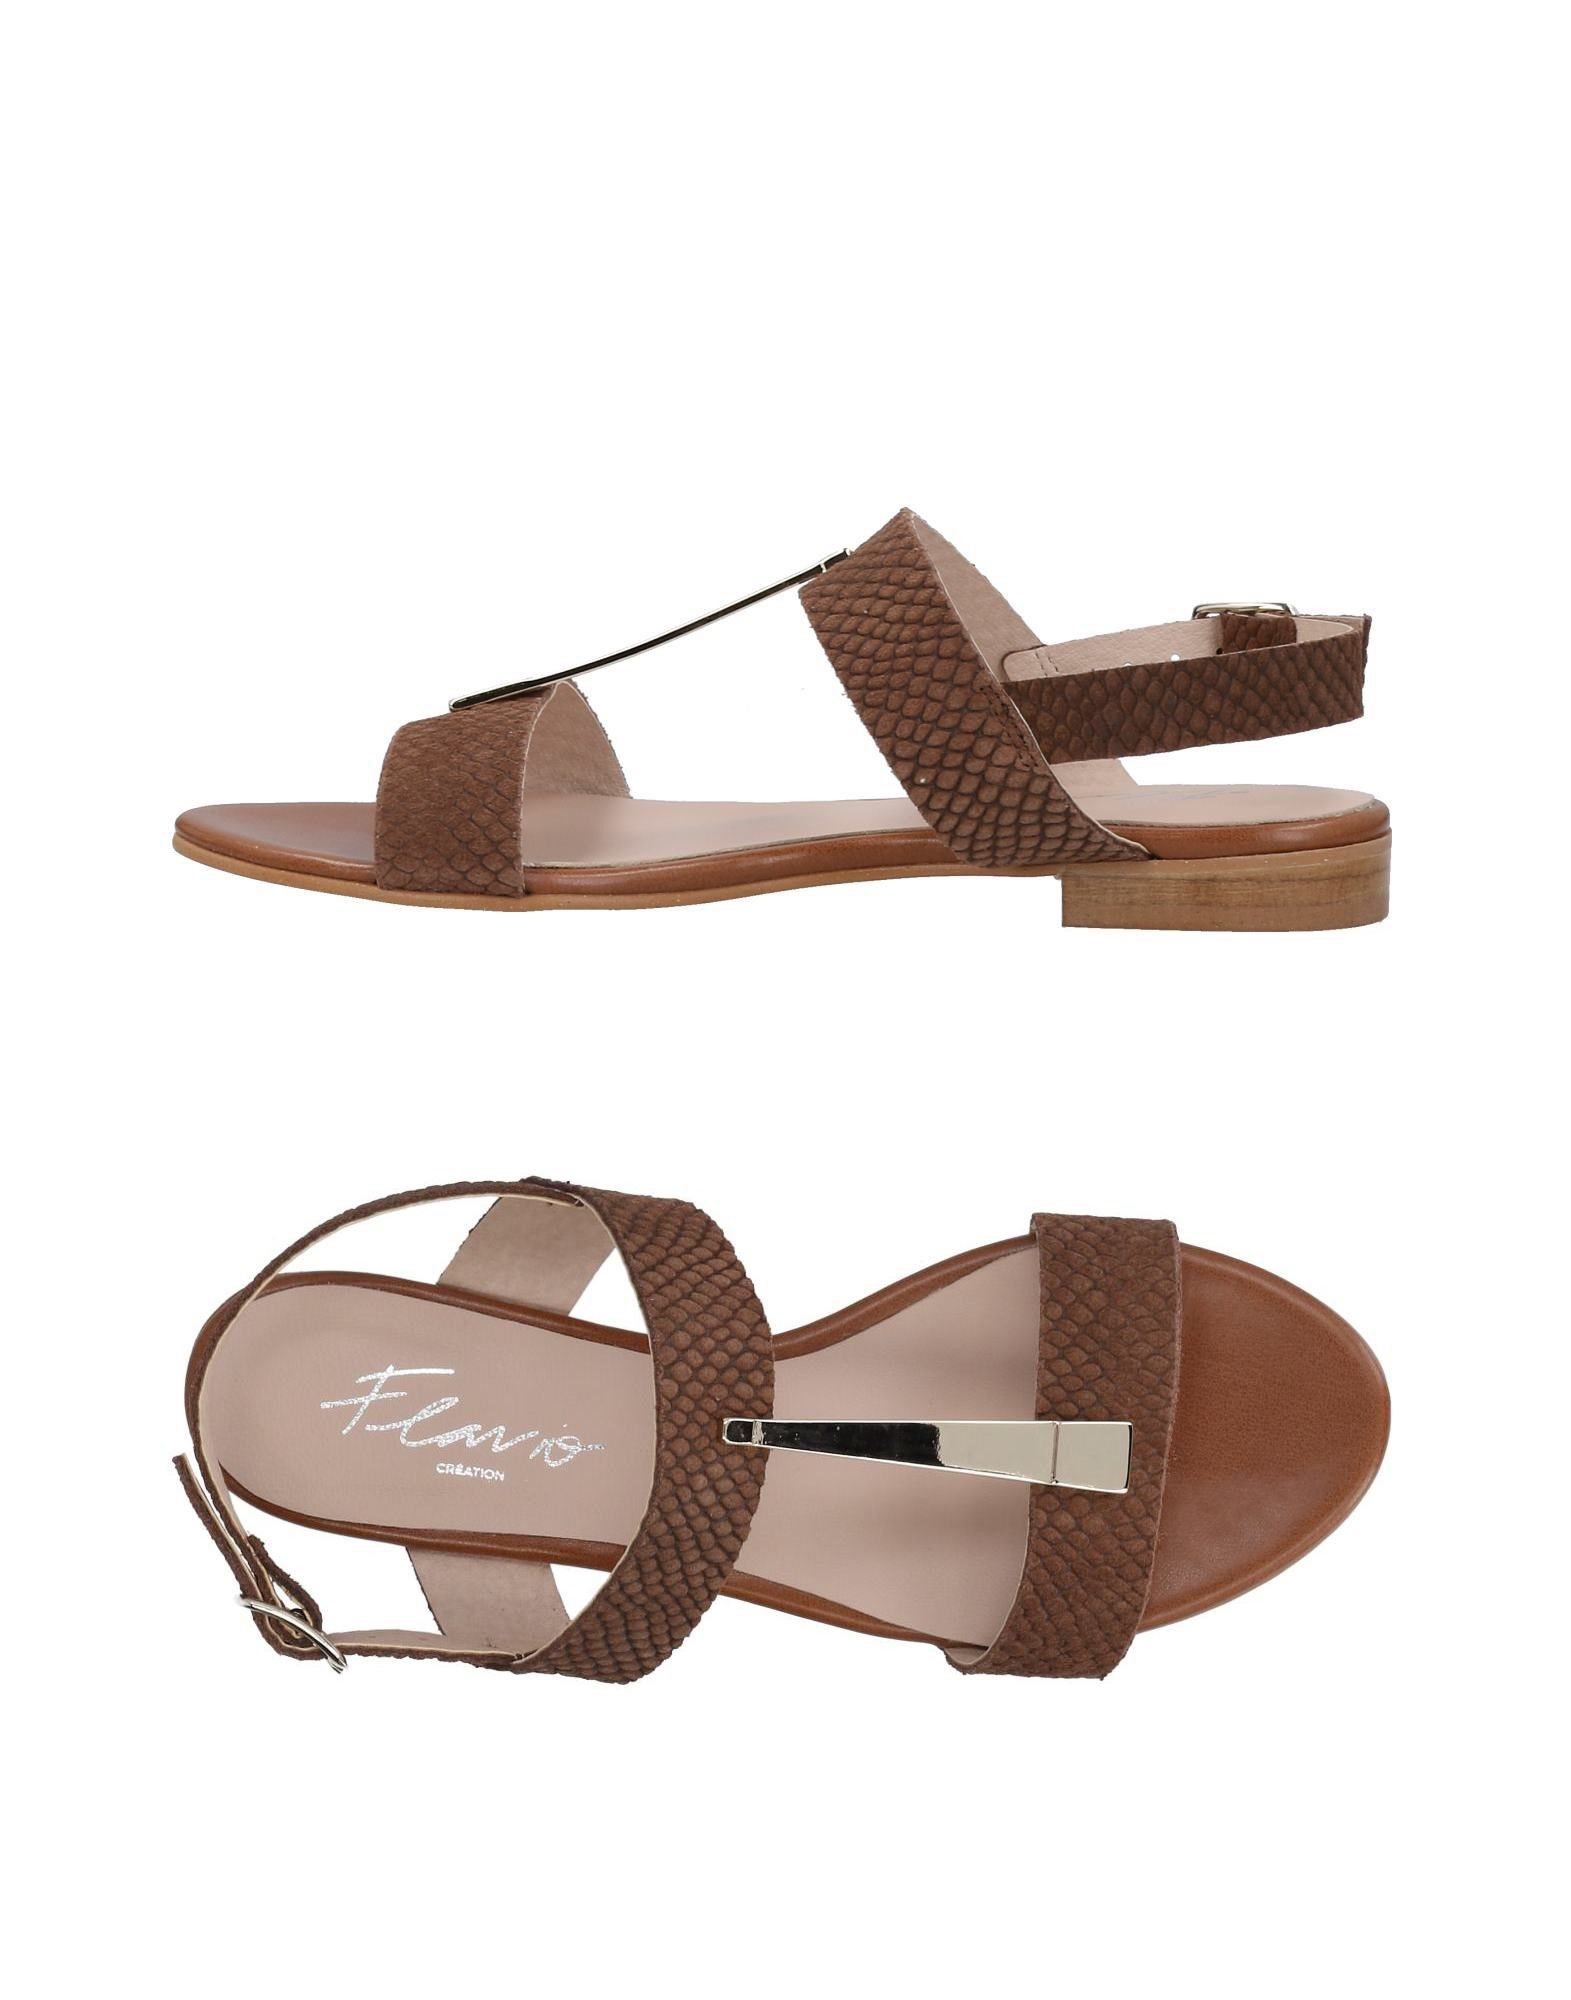 Sandales Flavio Creation Femme - Sandales Flavio Creation sur